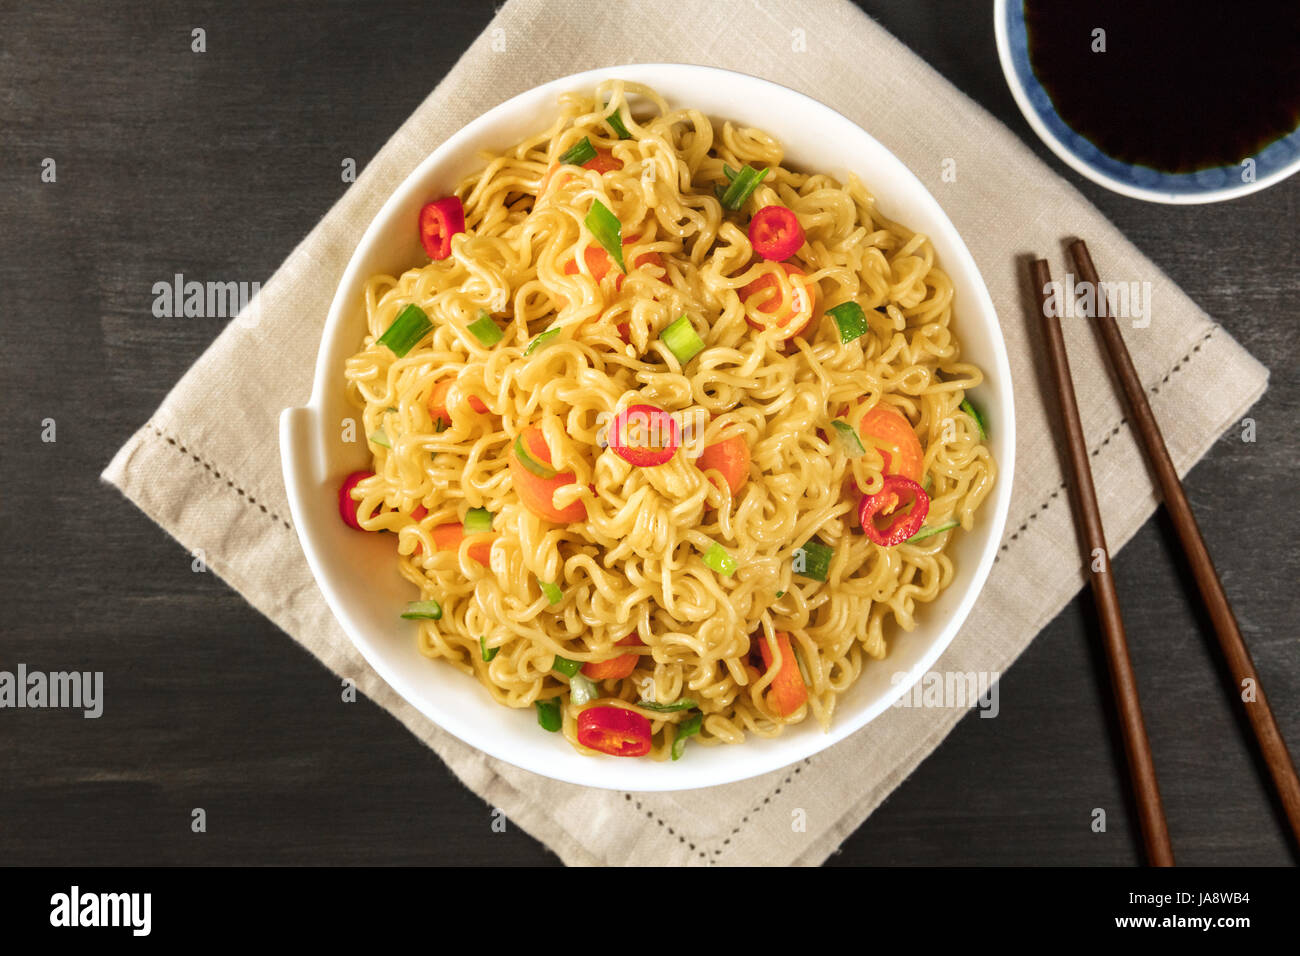 Instant noodles with vegetables, sauce, chopsticks, copy space - Stock Image